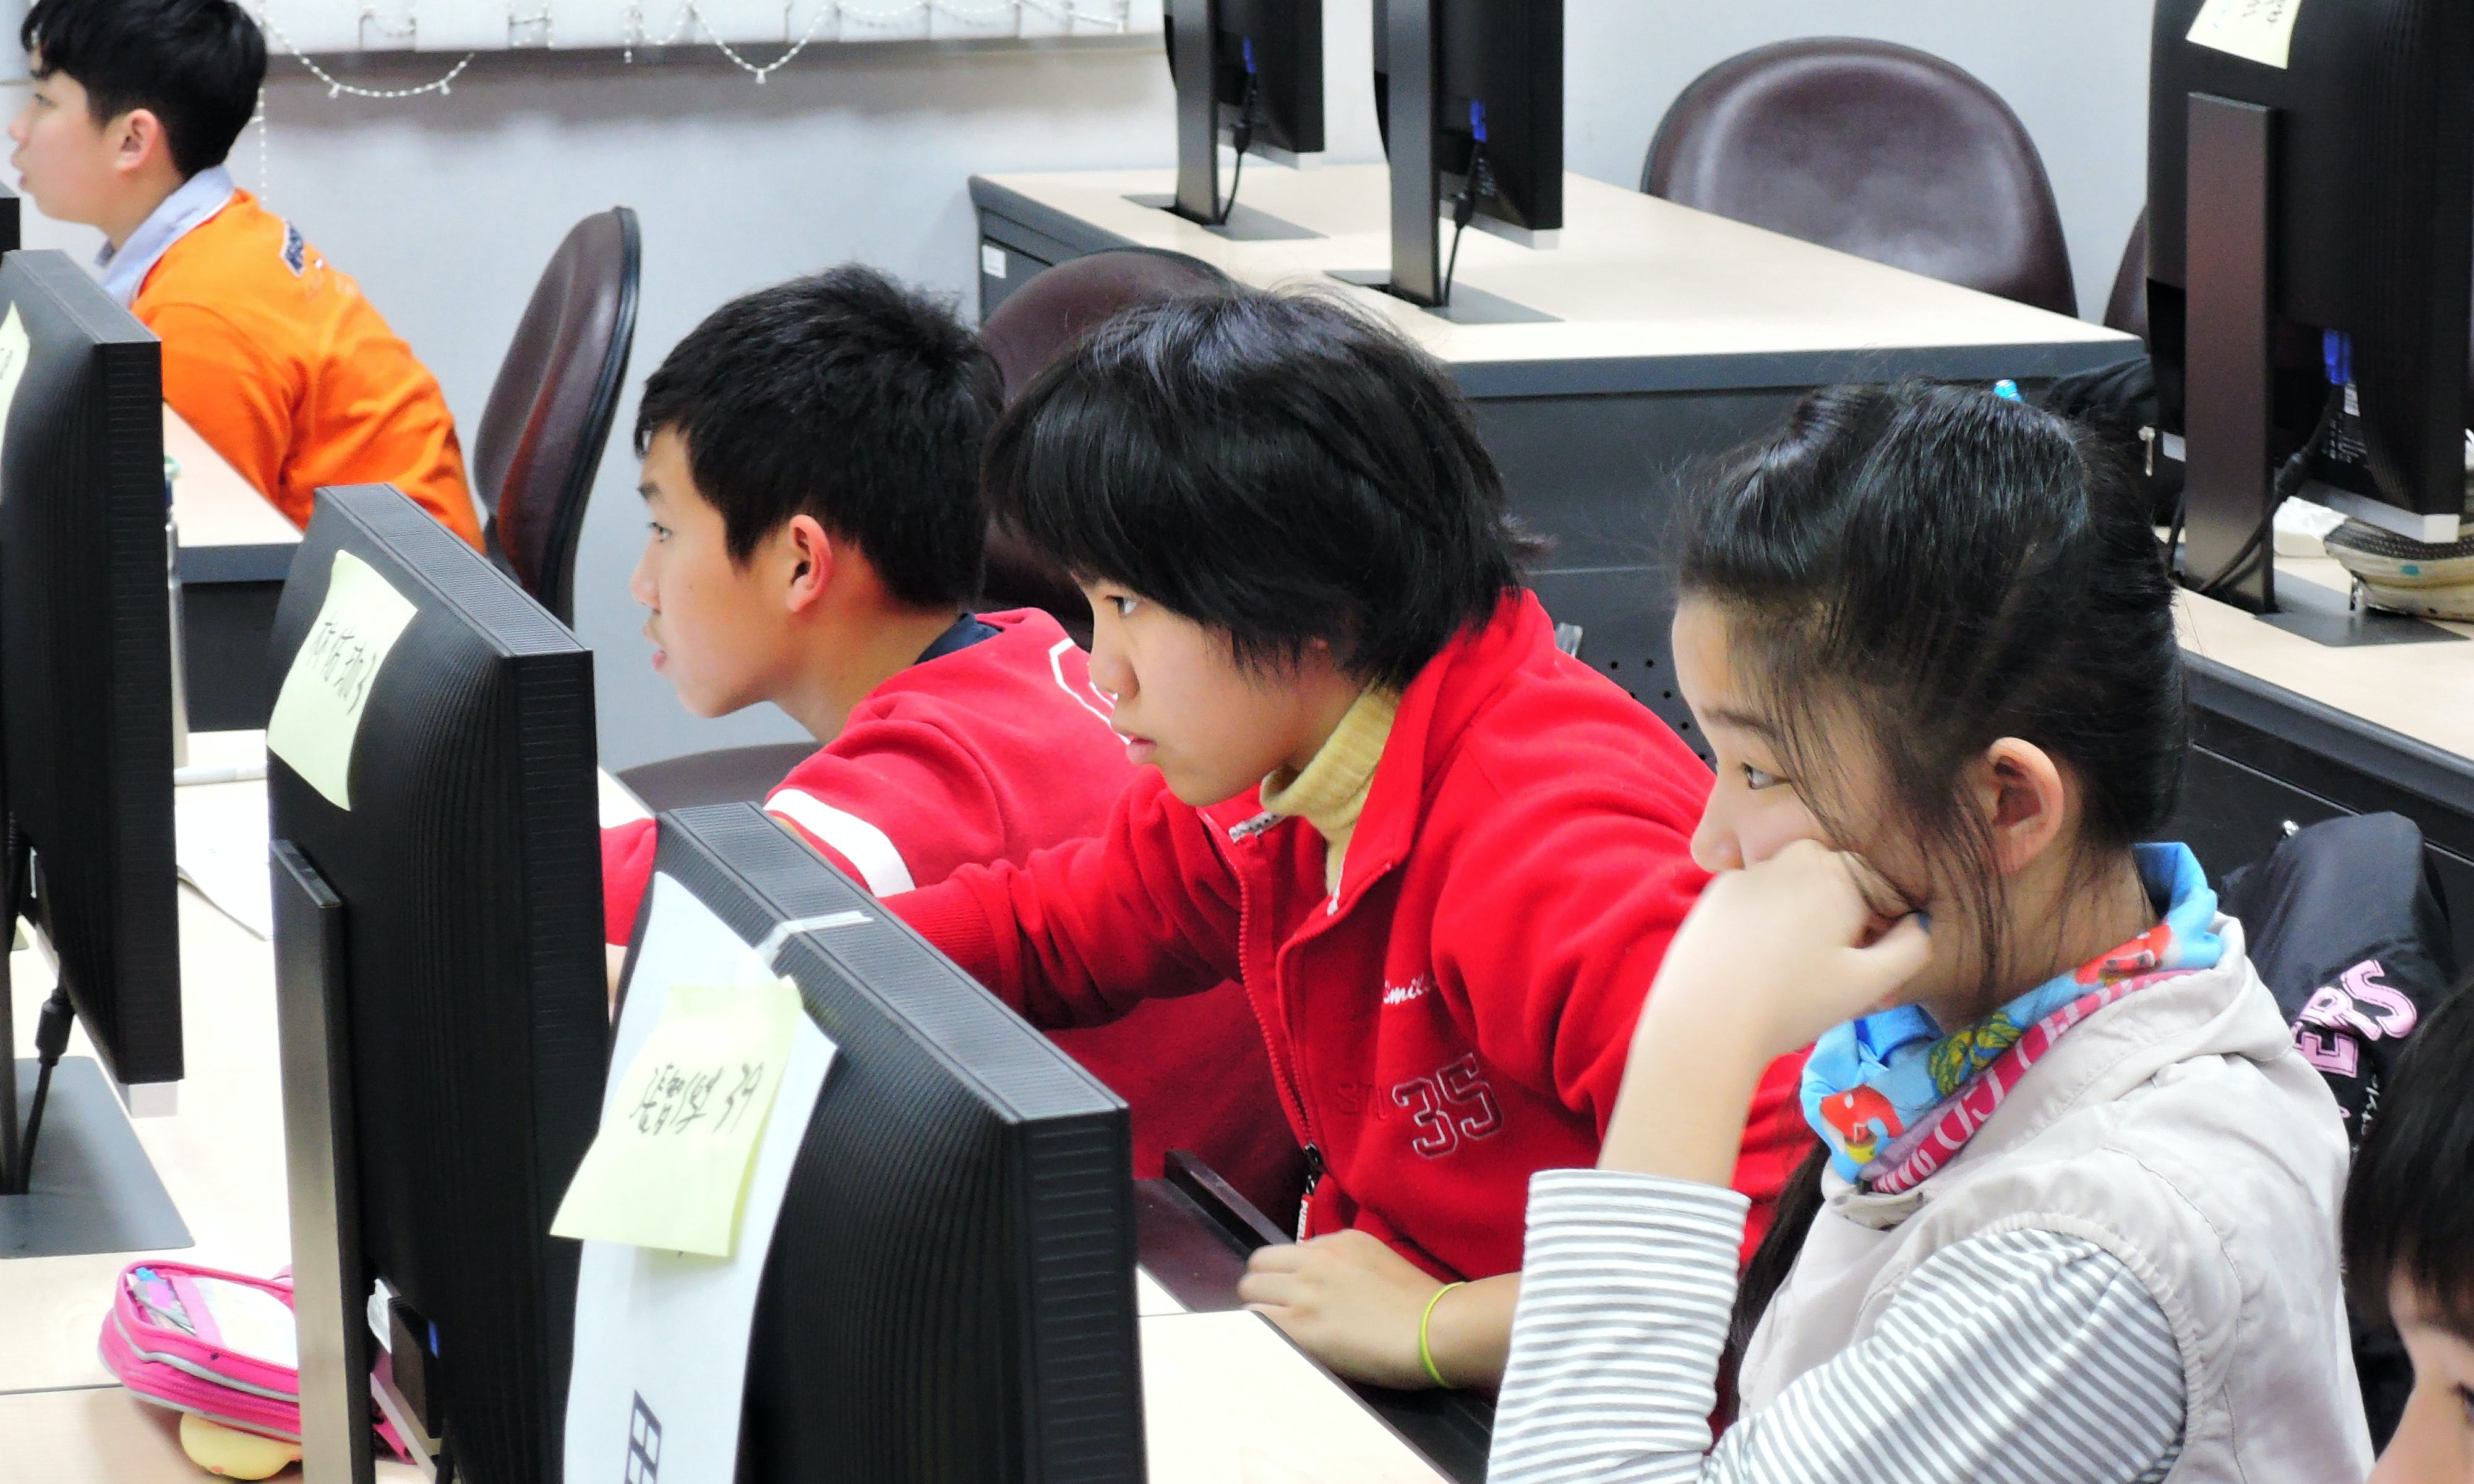 FEATURE: Is Taiwan Ready for an Automated Future? (Part 2)